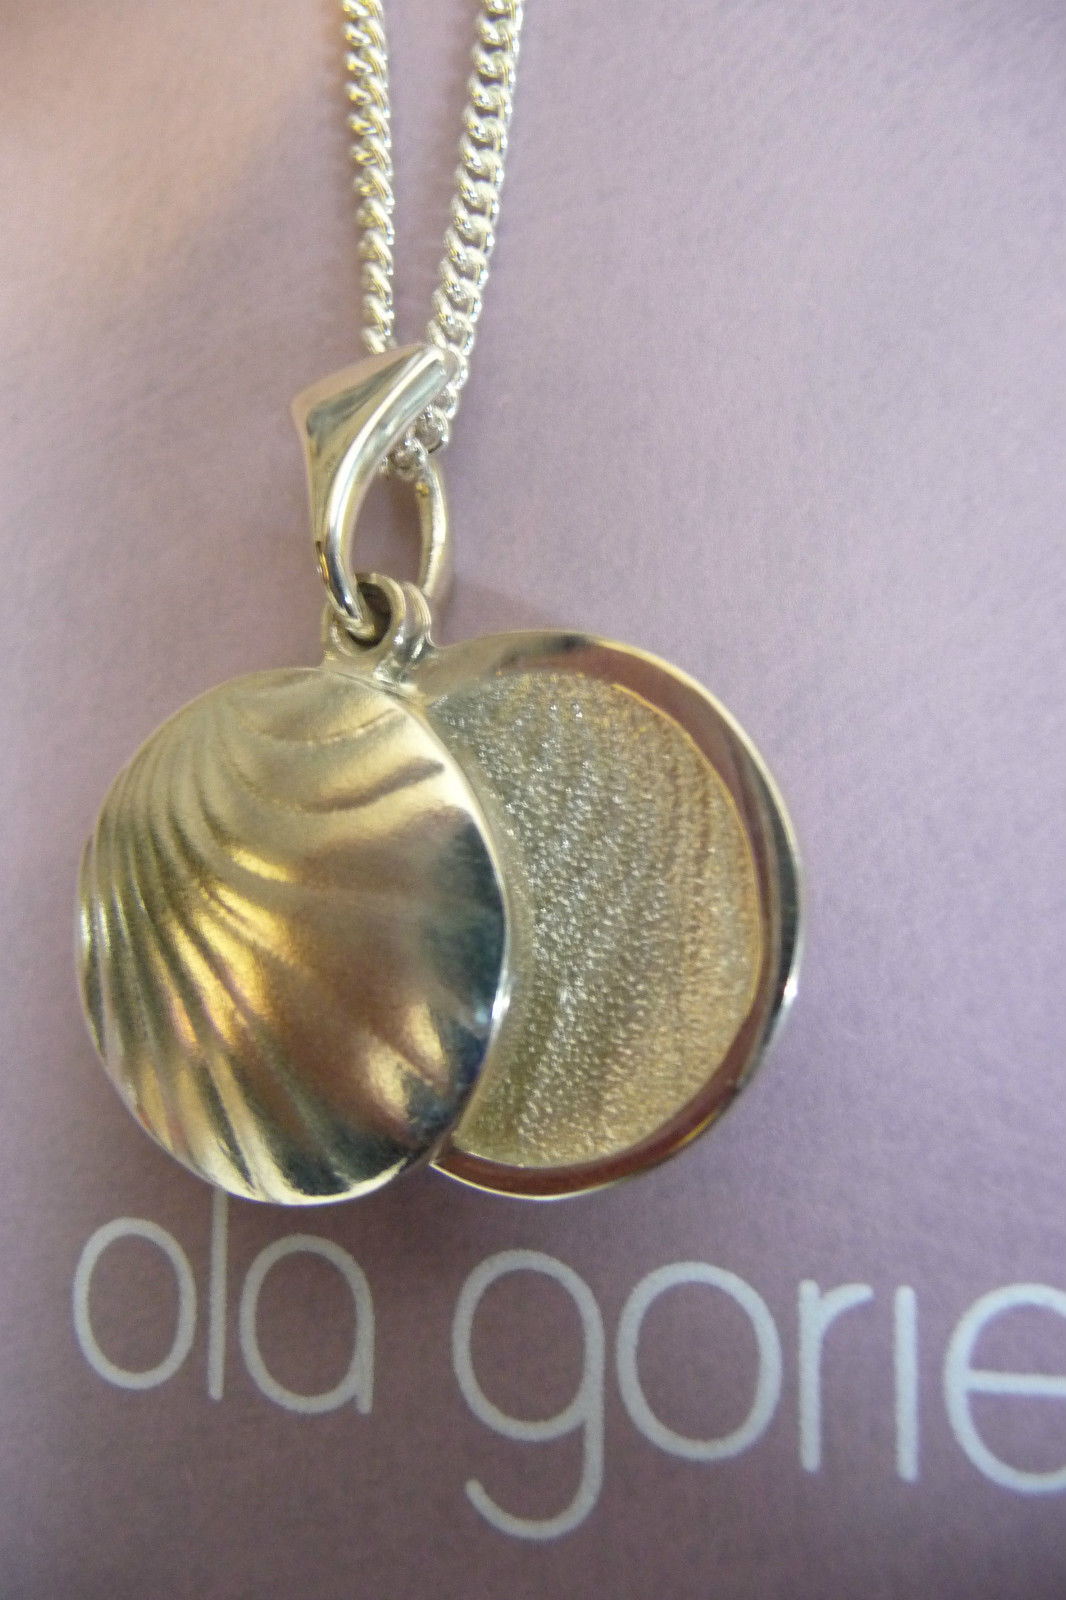 Ola Gorie Silver 9ct Drop Pendant Inspired by 1920s Bauhaus Furniture Scottish